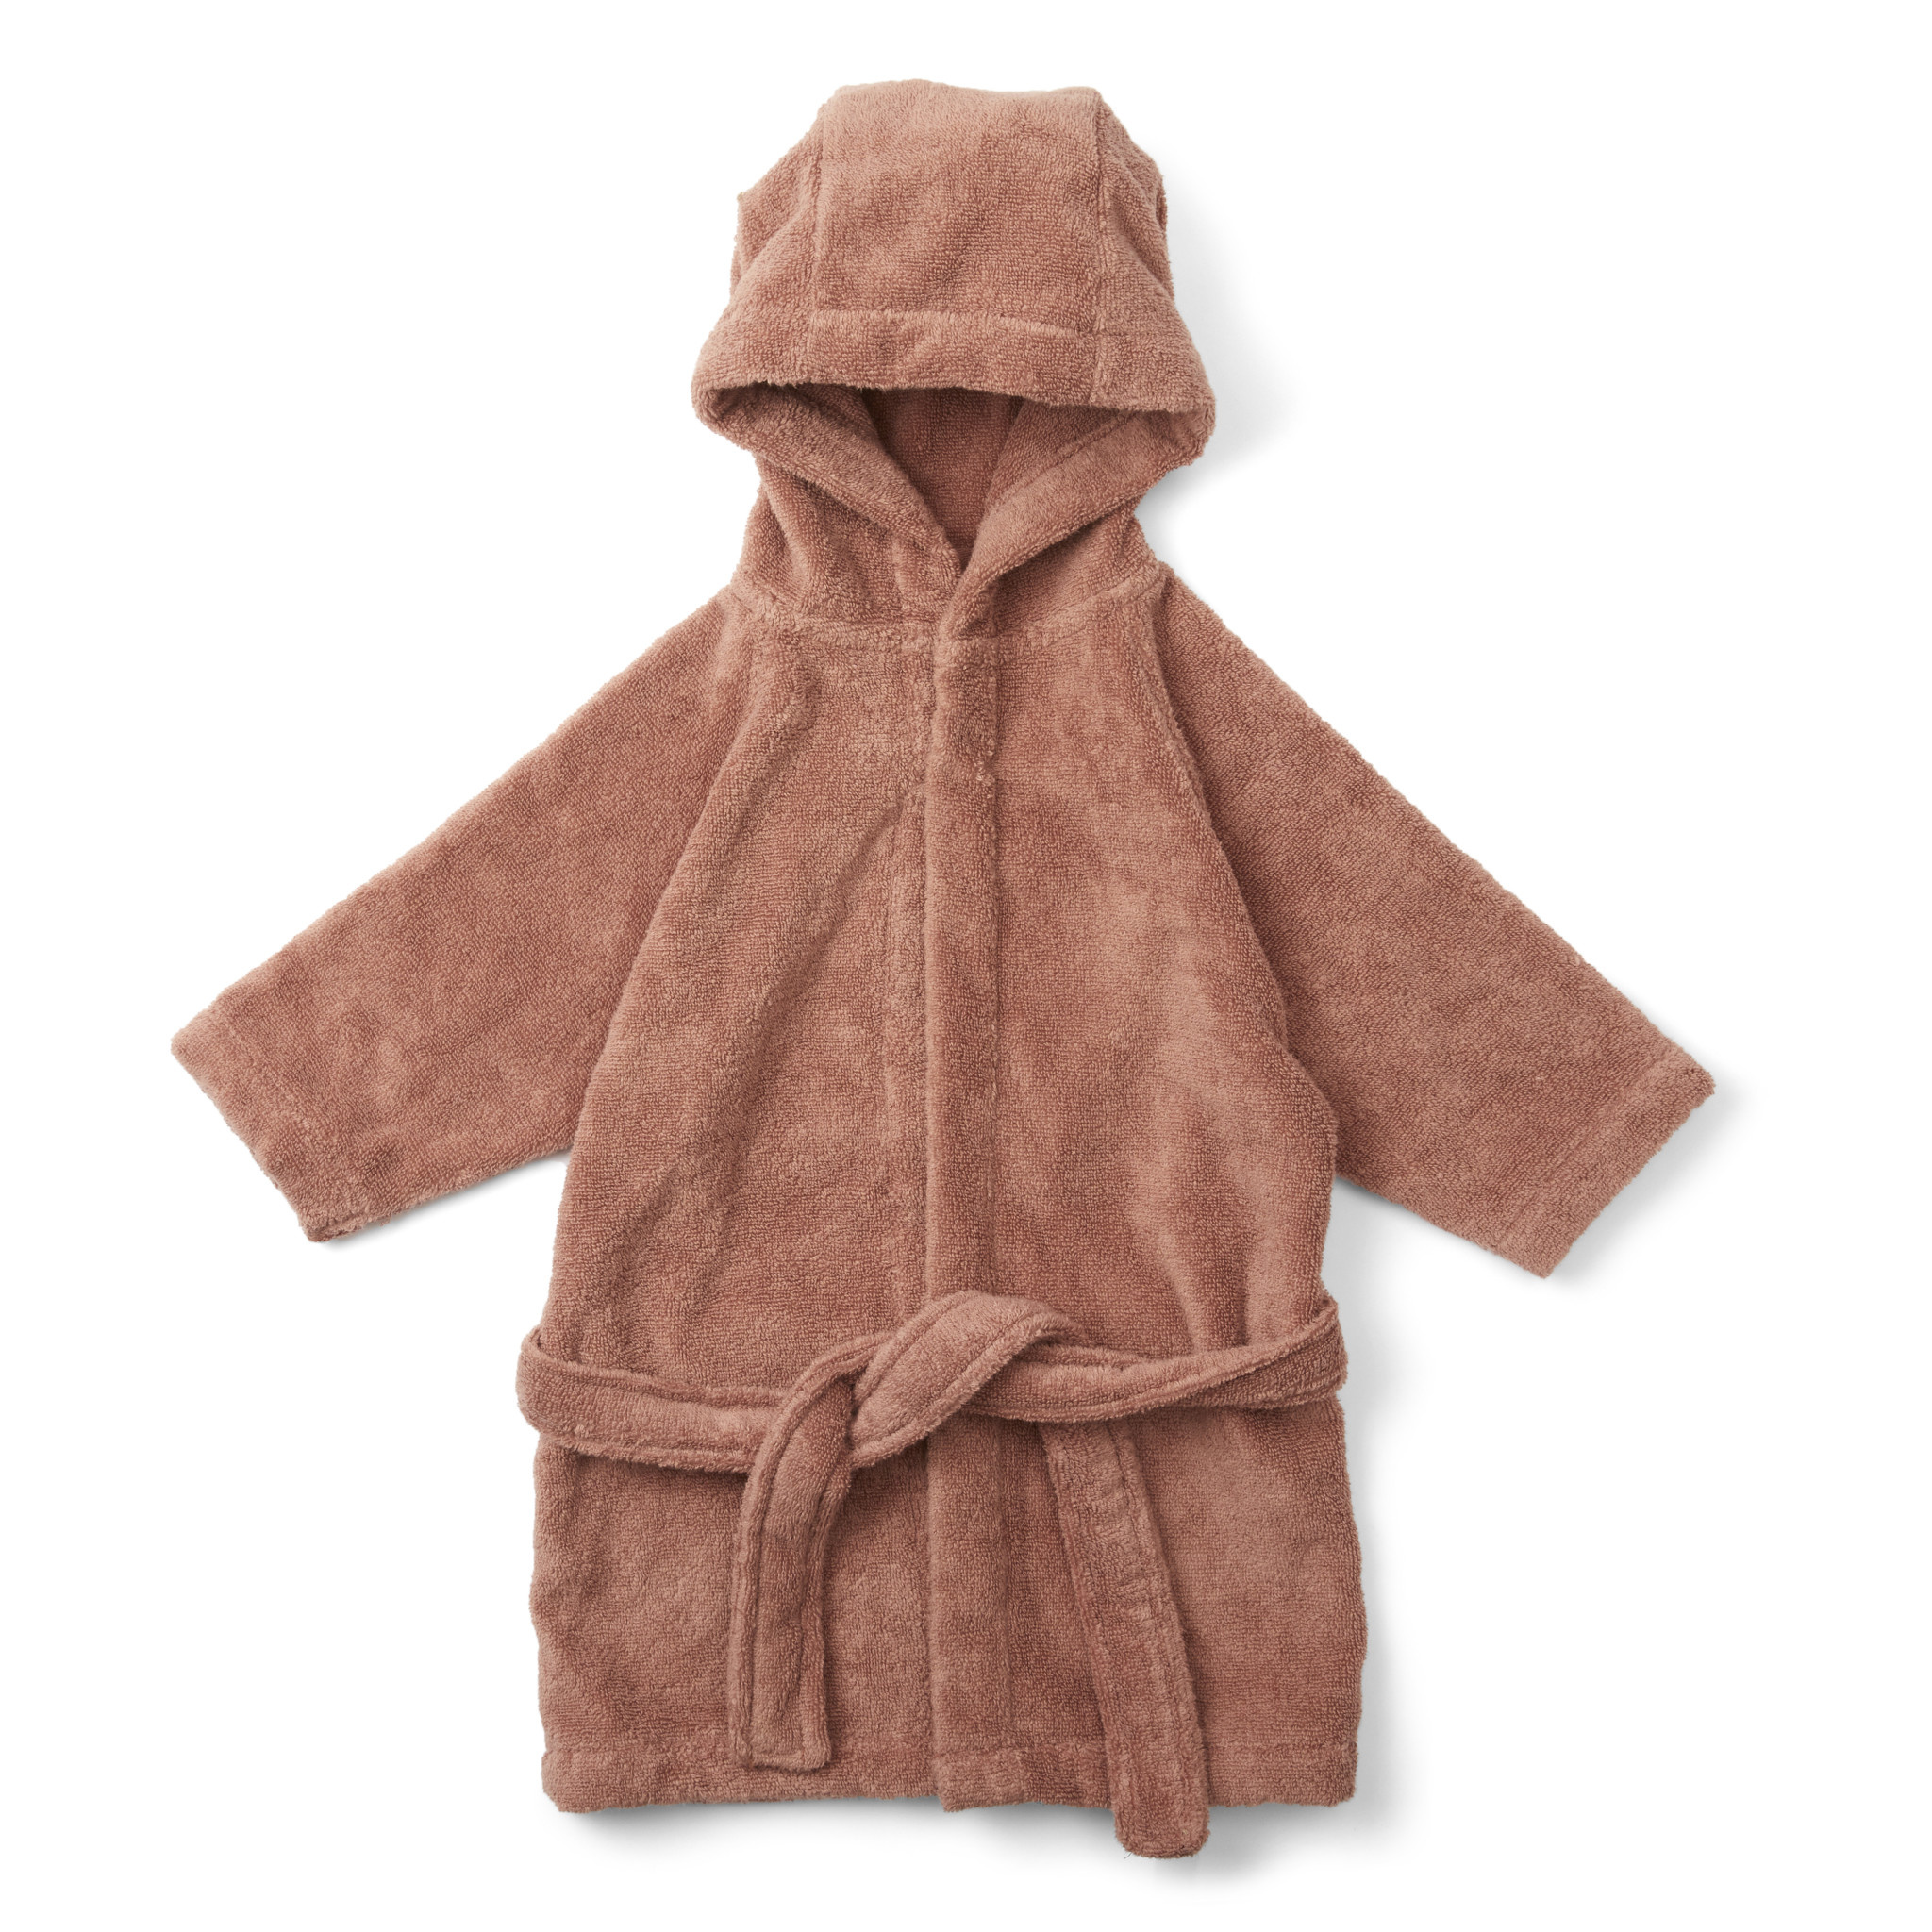 Kids terry bathrobe sienna-1